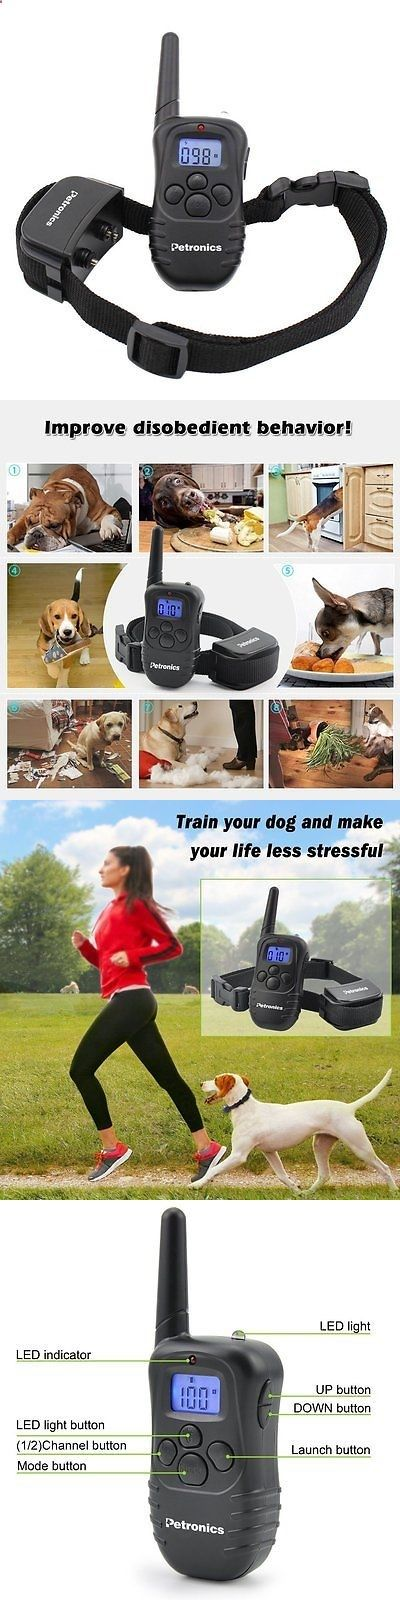 Electronic Fences 116388: 2016 Newest Electric Dog Fence 2 Wireless Shock Collar Waterproof Hidden System. -> BUY IT NOW ONLY: $33.45 on eBay!